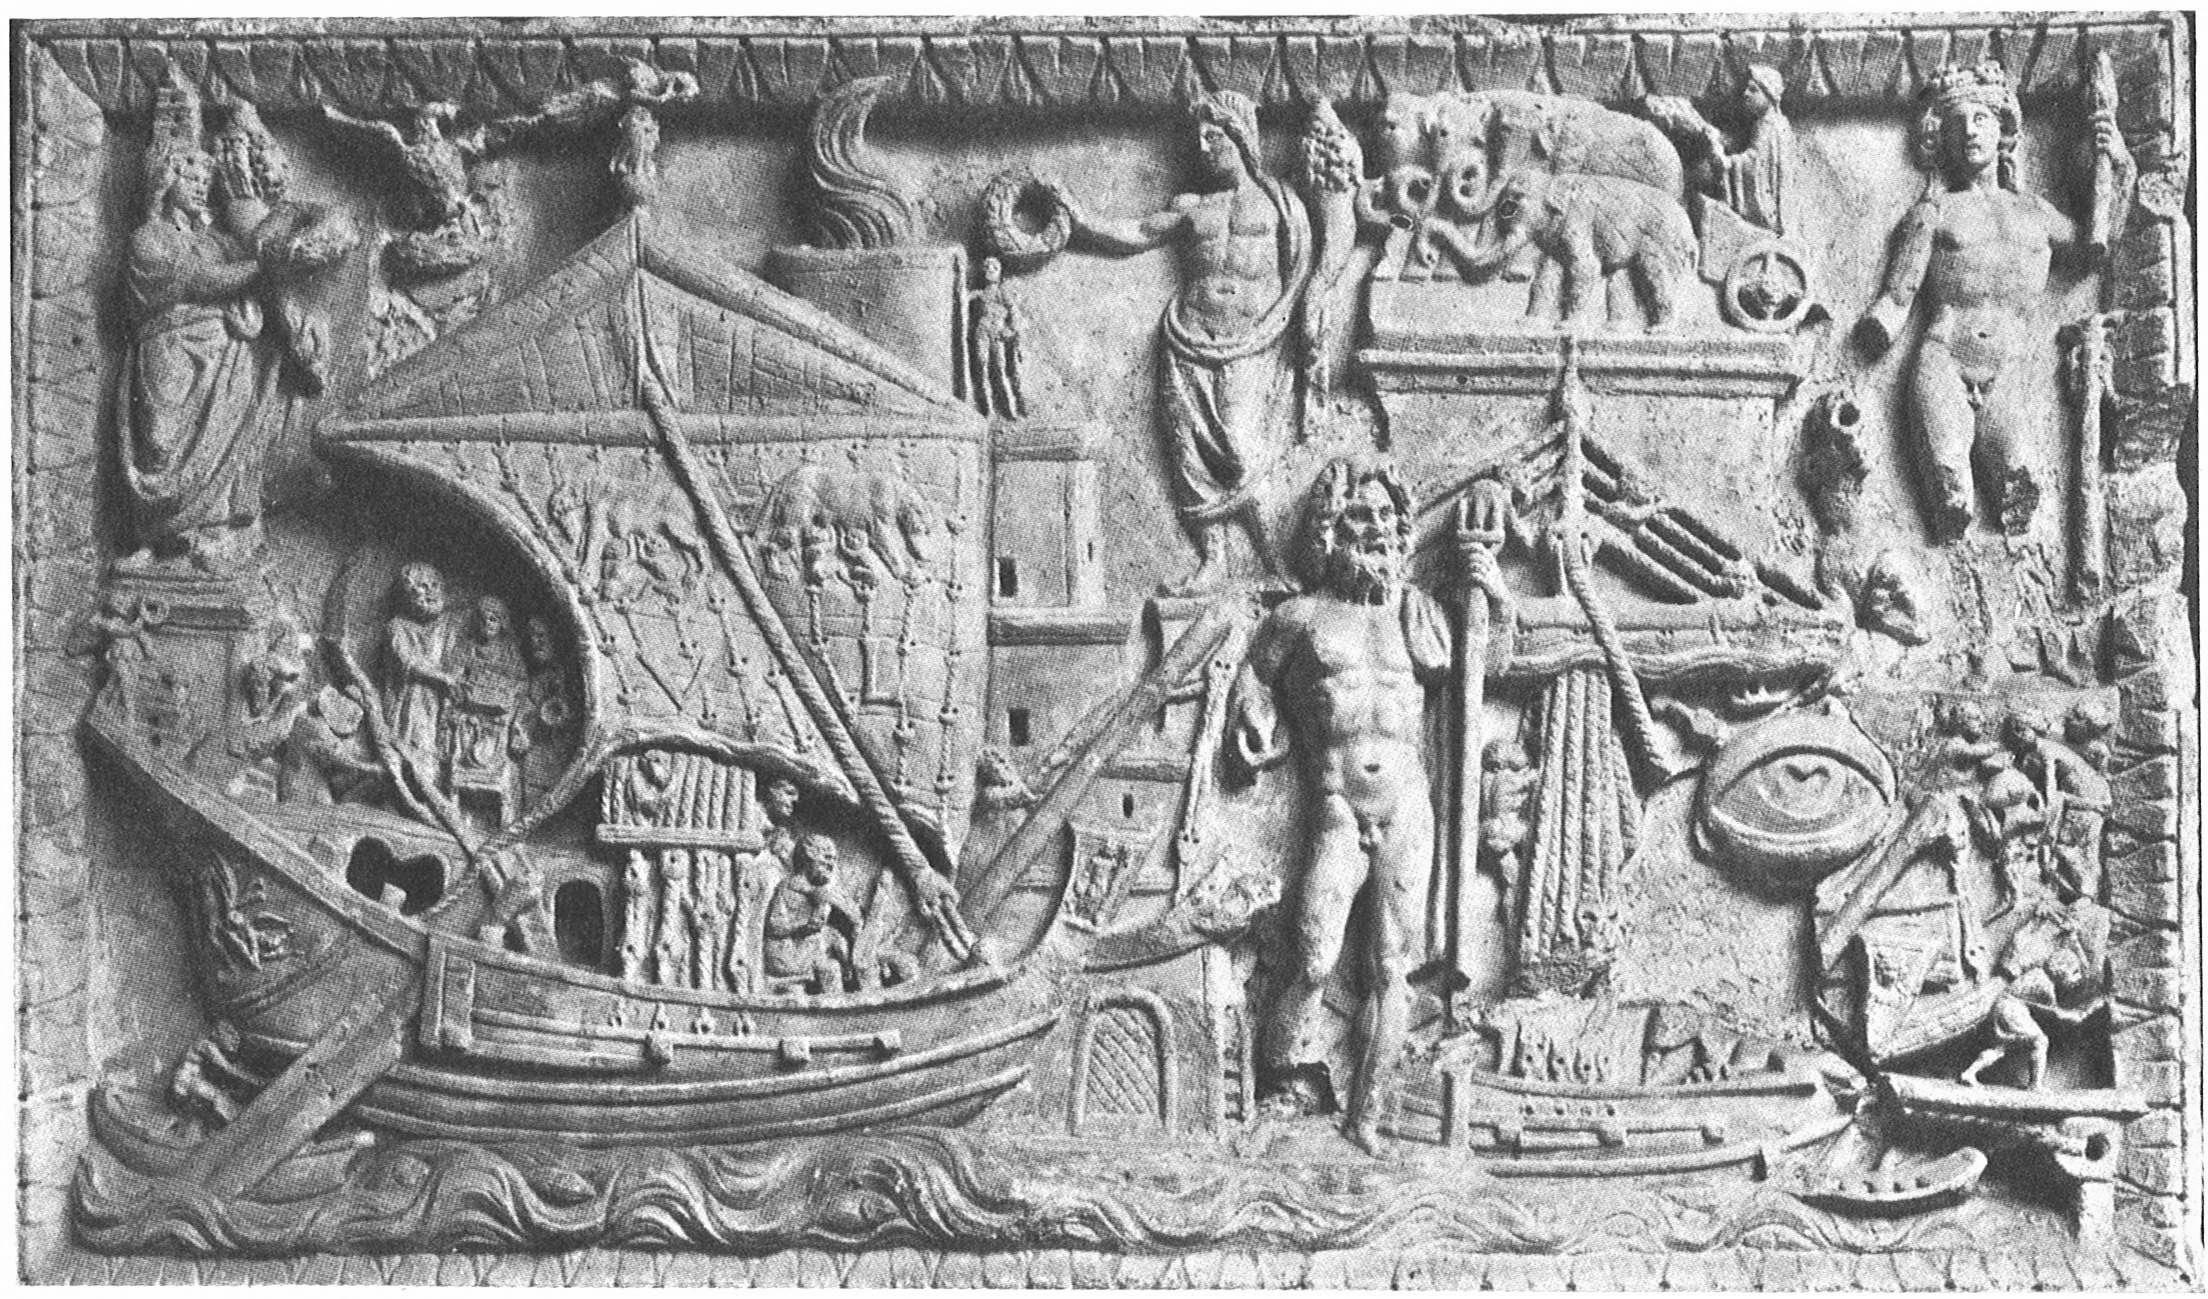 relief - Image